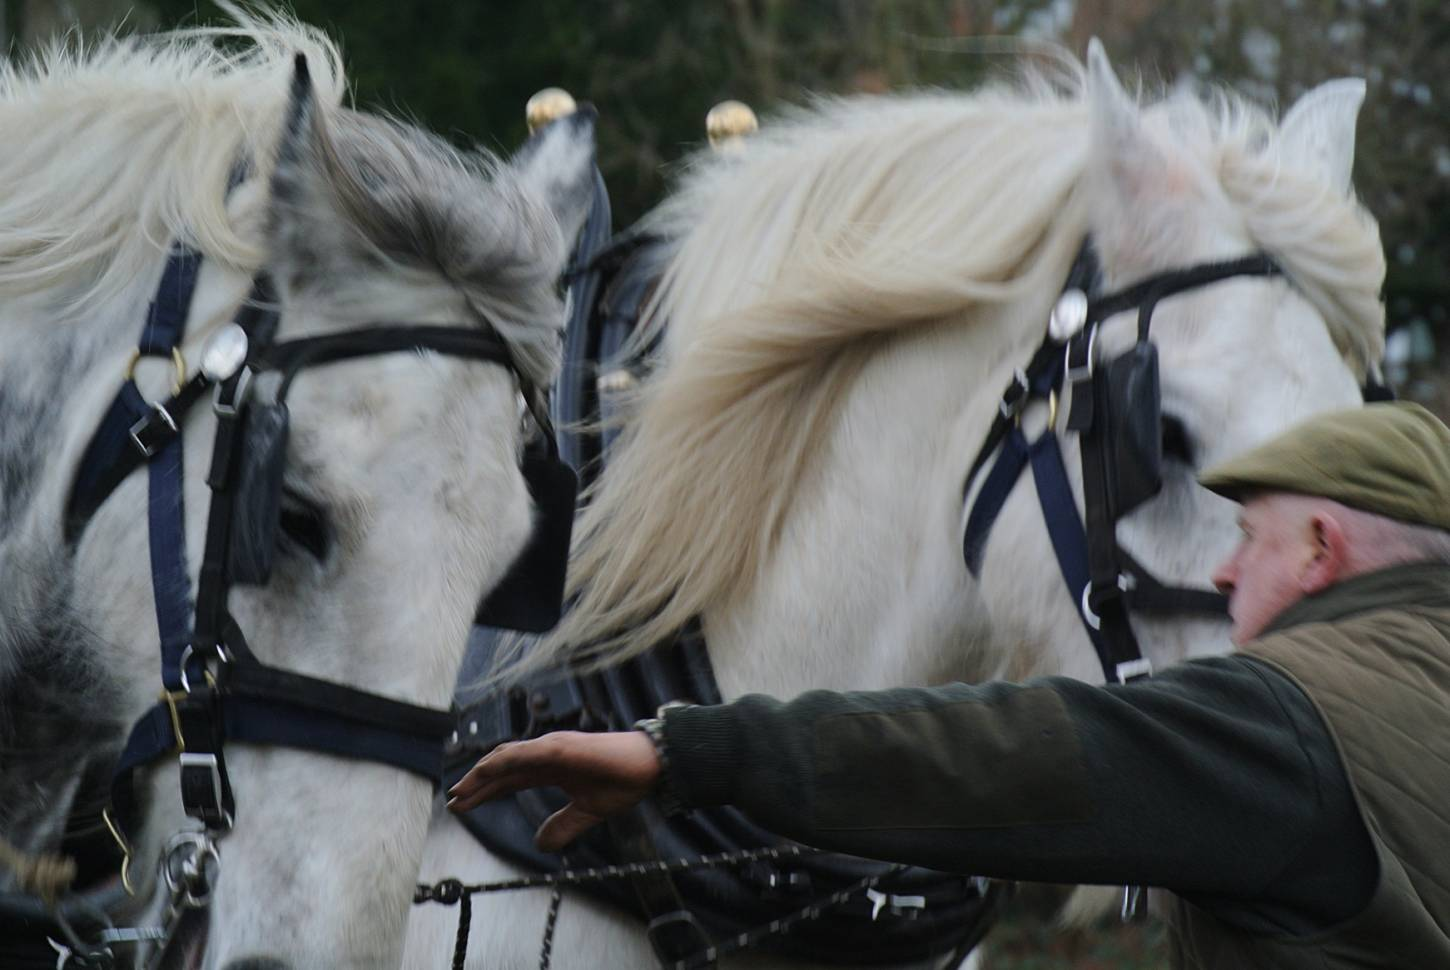 Shire horses, Heath and Nobby with ploughman Tom Nixon from <a href='http://www.operationcentaur.com/' target='_blank'>Operation Centaur</a> come to plough the <a href='https://twitter.com/ruskinparkse5?lang=en' target='_blank'>Ruskin Park</a> wheat patch. Image: Marie Cullen - 12:24pm&nbsp;9<sup>th</sup>&nbsp;Feb.&nbsp;'18